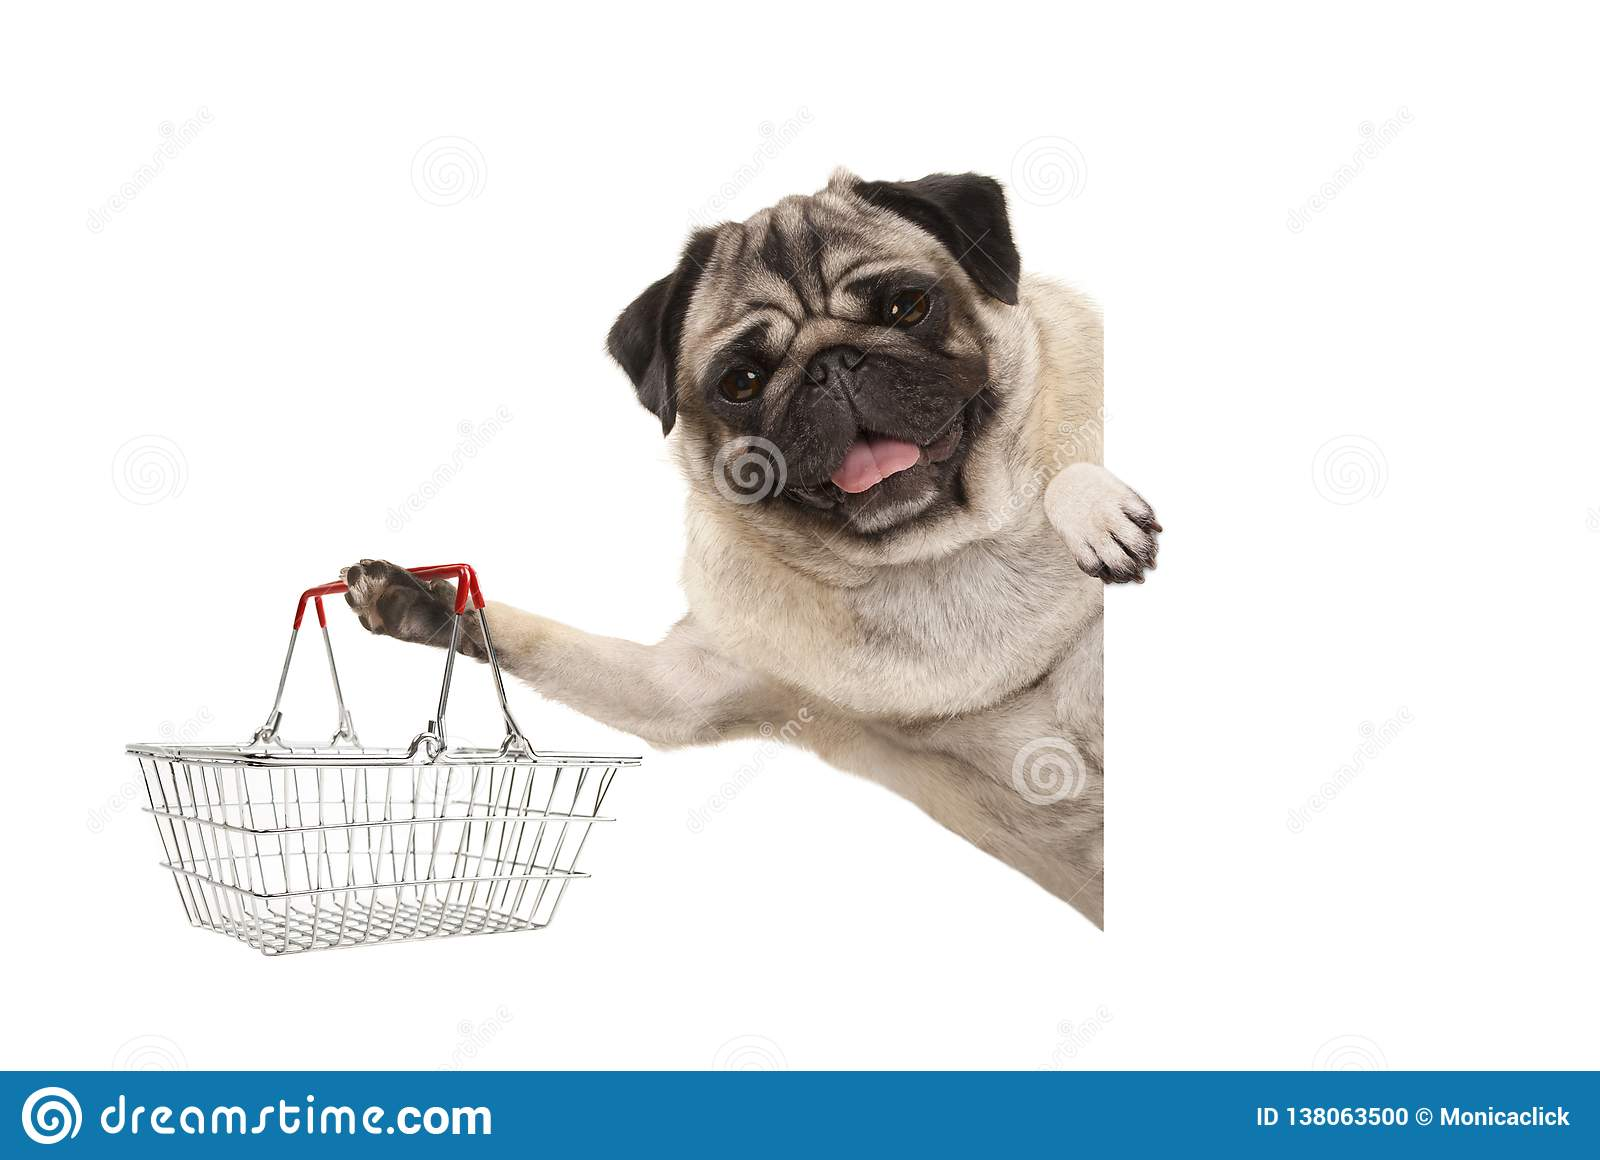 Happy smiling pug puppy dog, holding up wire metal shopping basket, behind white banner